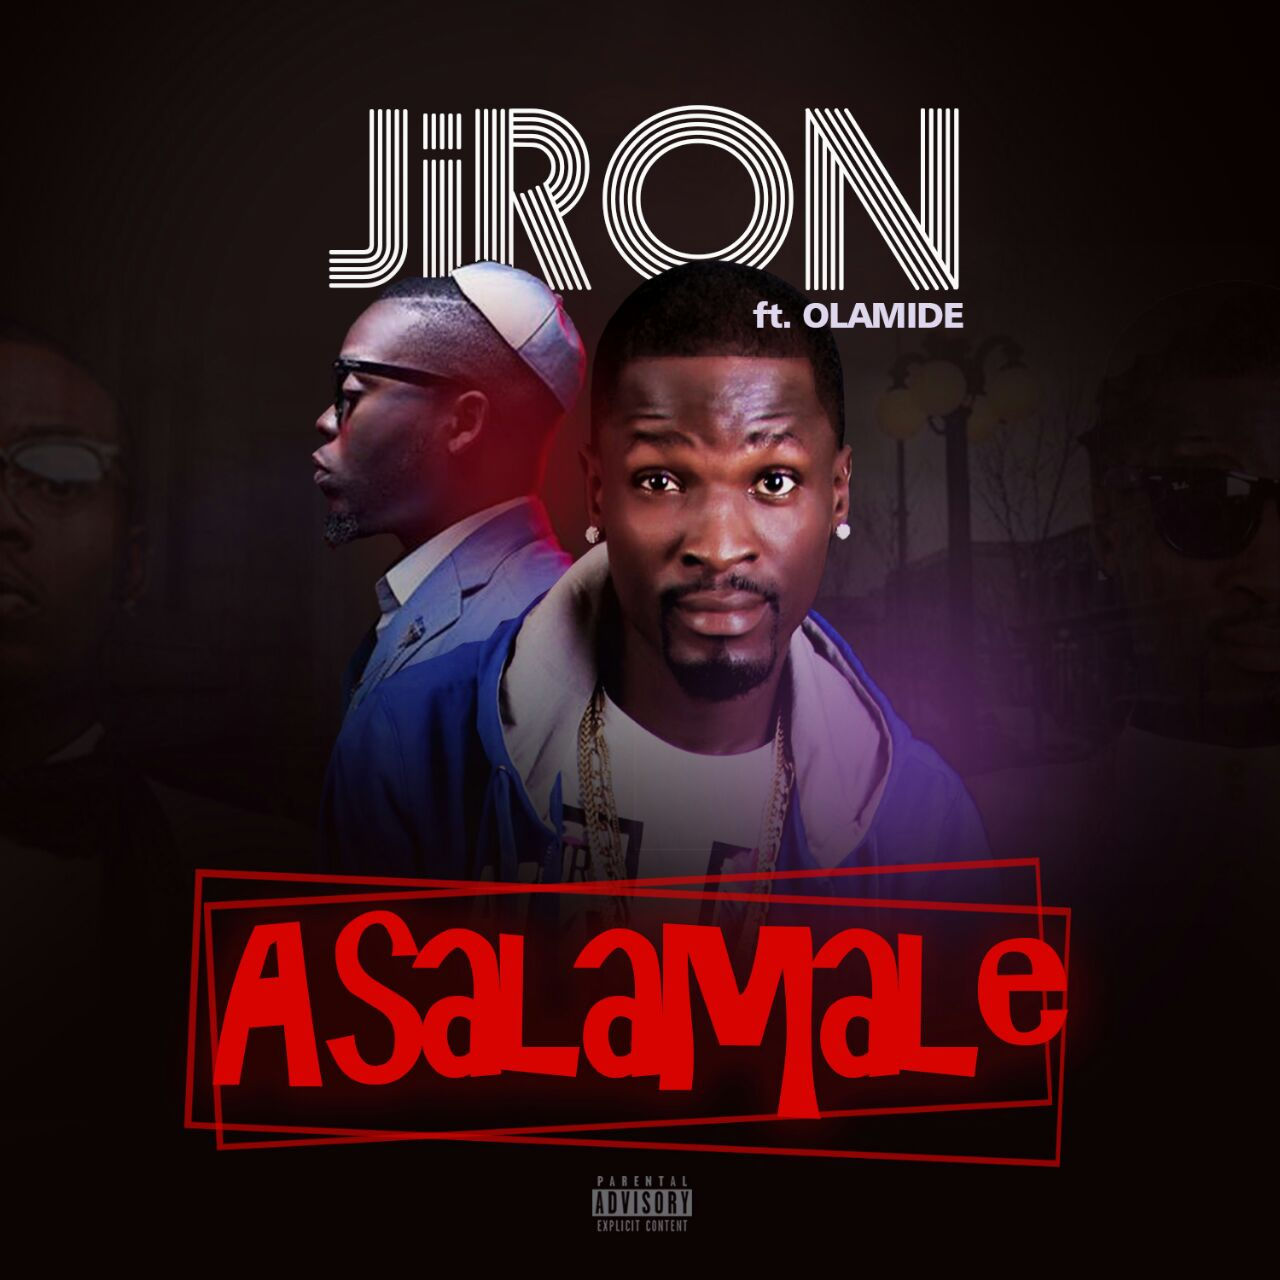 Jiron ft. Olamide – Asalamale (prod. Puffy Tee)